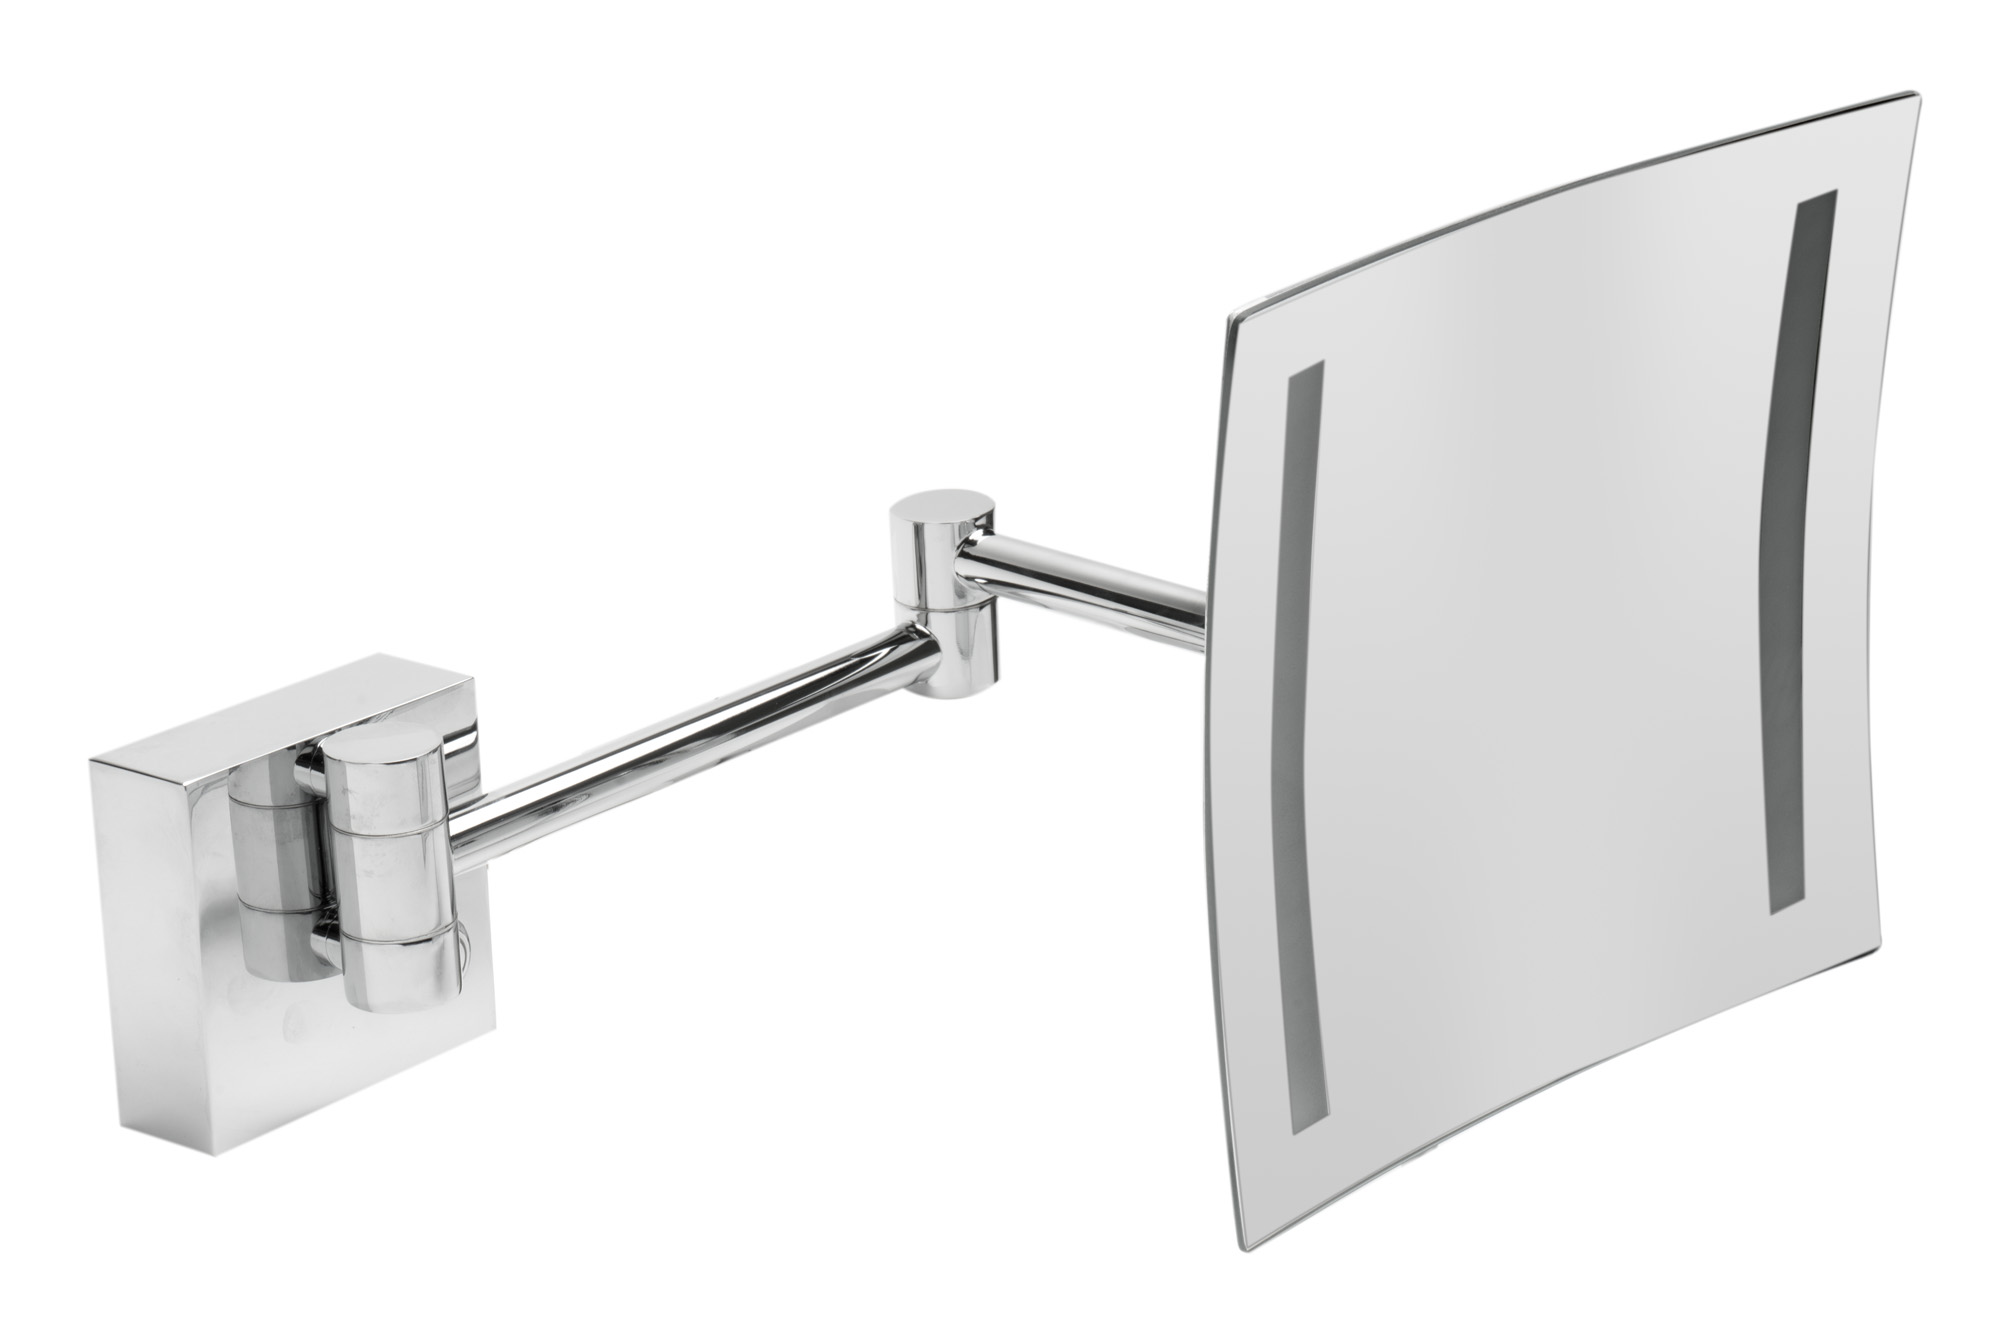 Alfi Brand ABM8WLED-PC 8 in. Wall Mount Square 5x Magnifying Cosmetic Mirror with Light - Polished Chrome